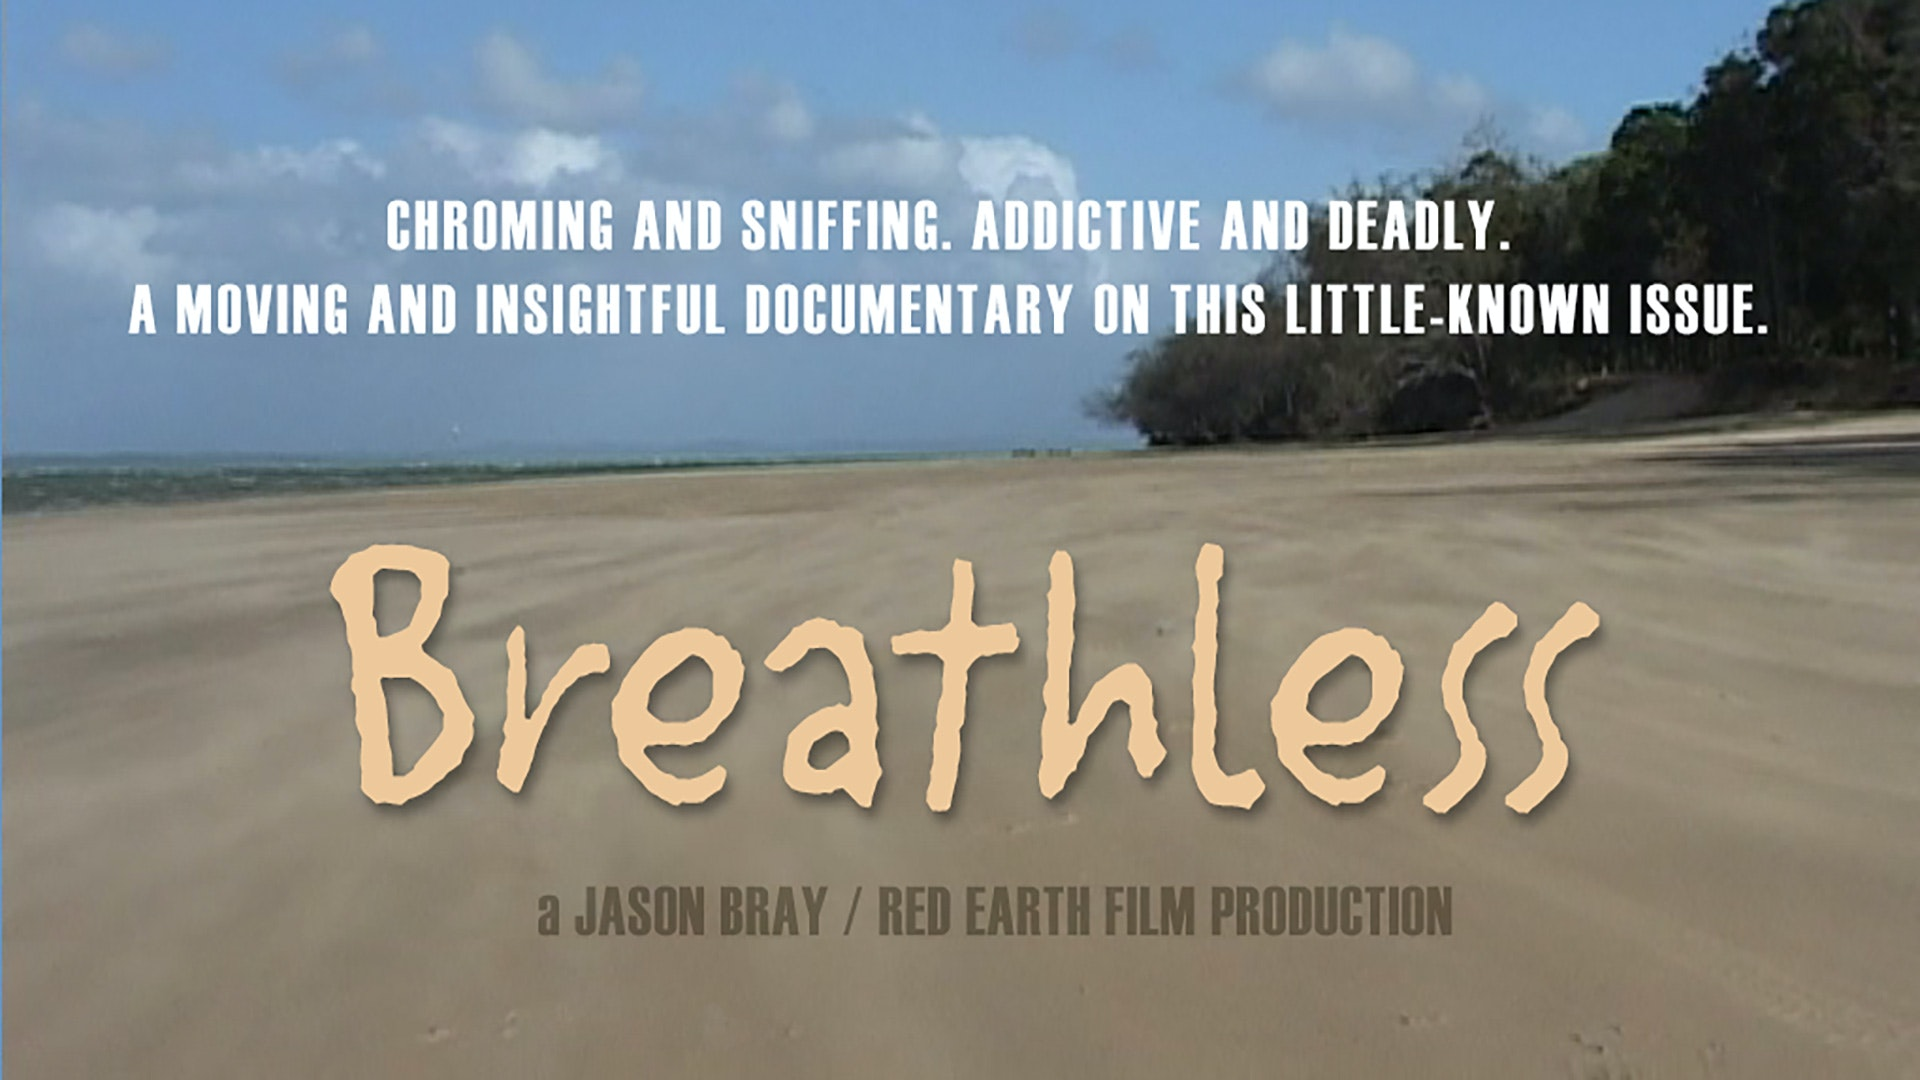 Breathless documentary